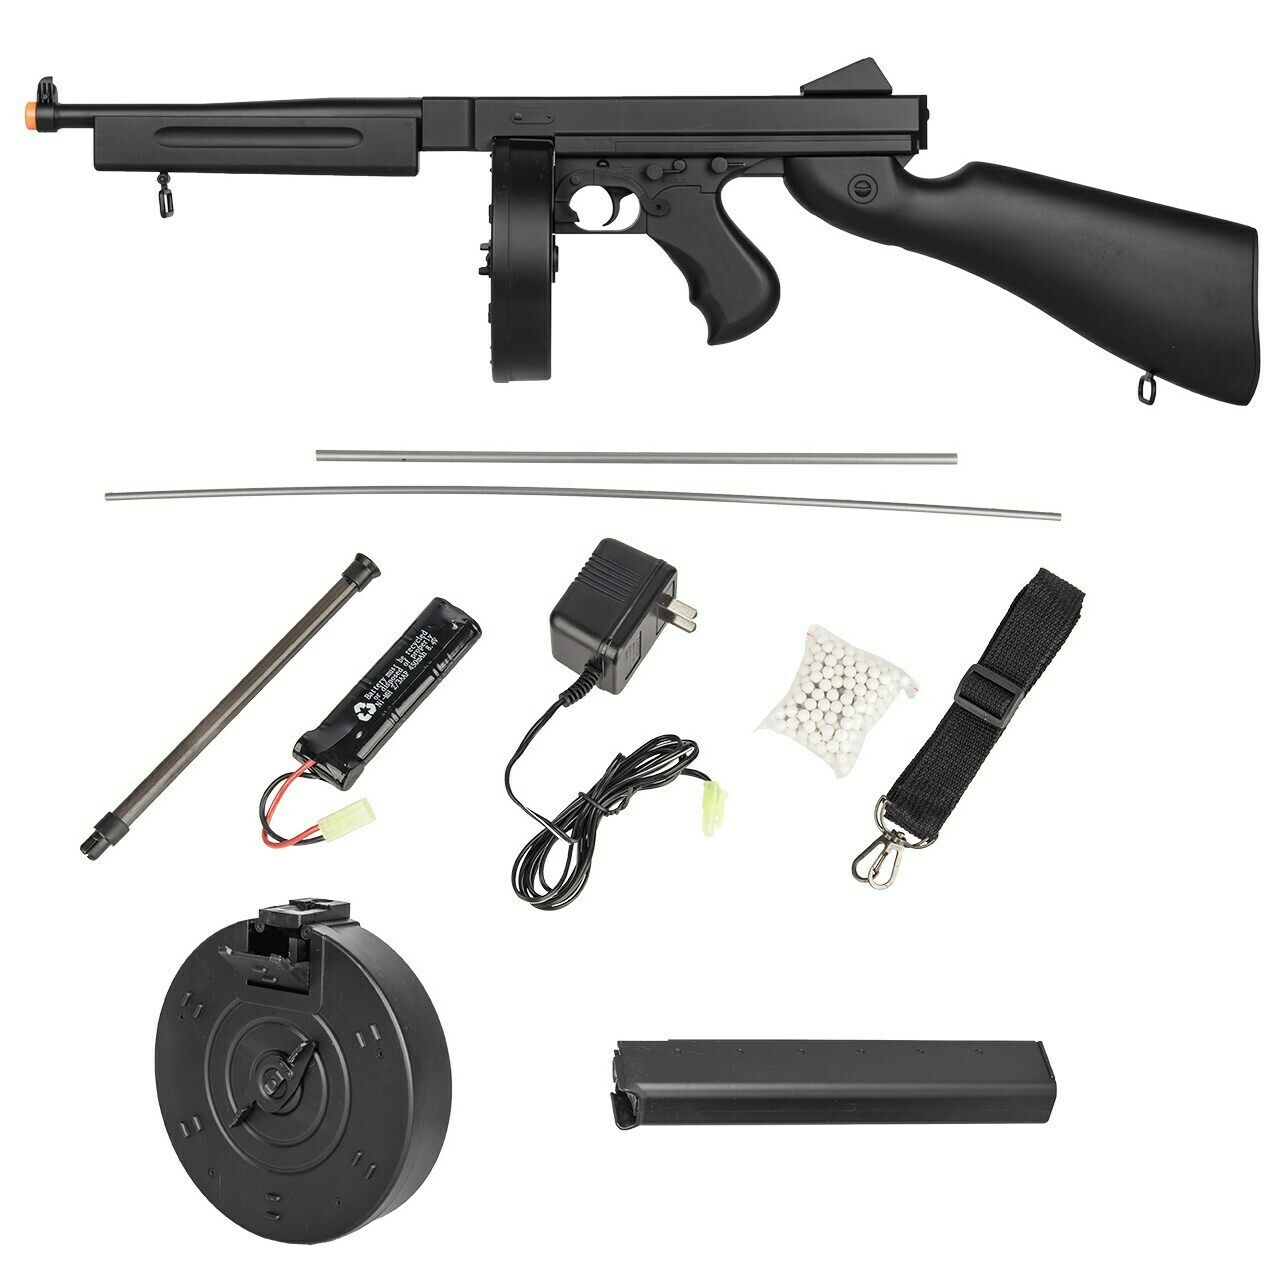 300 FPS FULL AUTO AIRSOFT TOMMY GUN THOMPSON M1A1 ELECTRIC AEG RIFLE w/ 6mm  BB